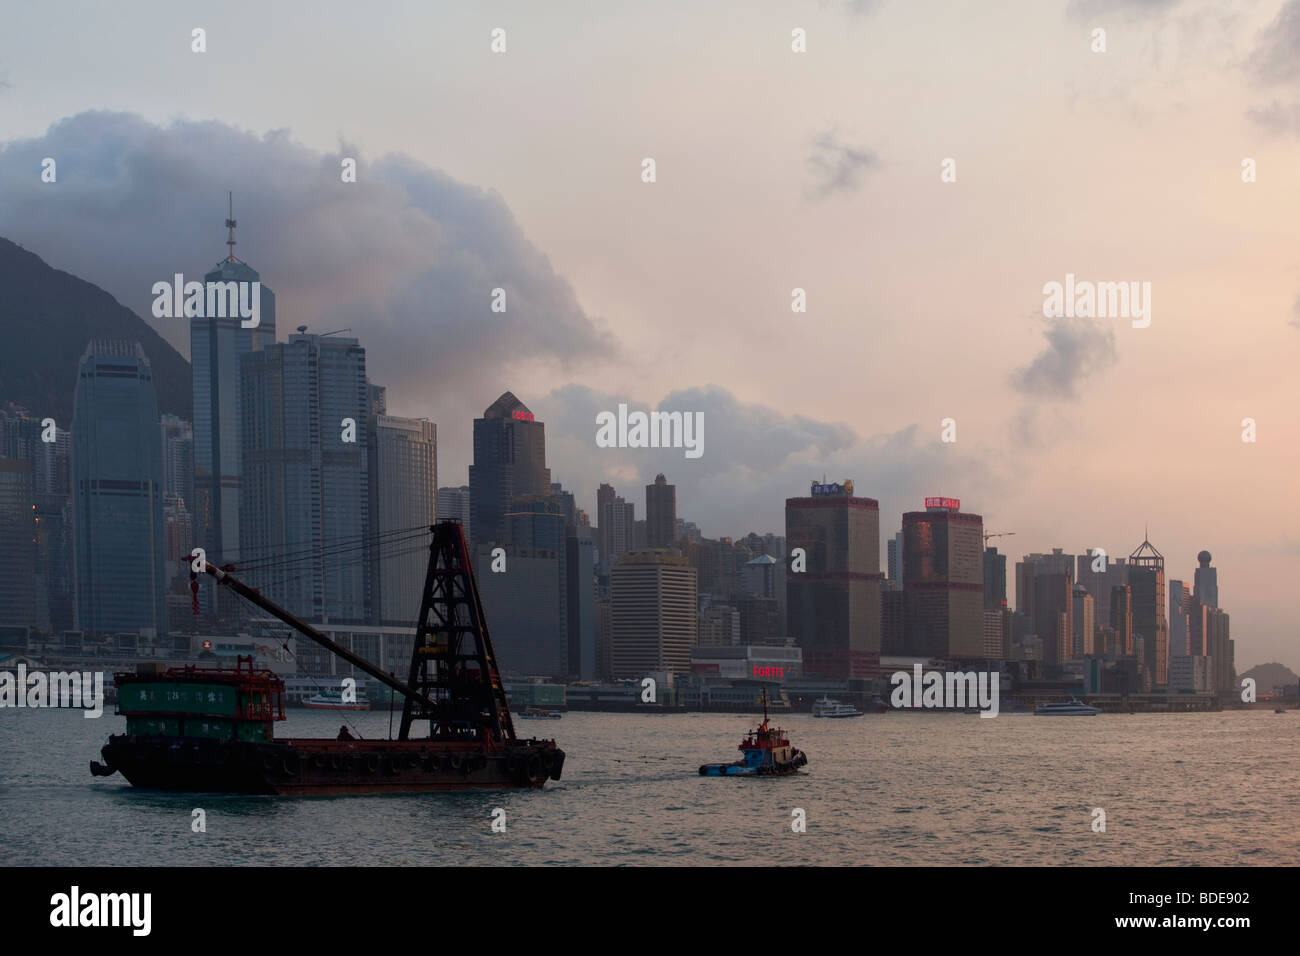 Tug pulling boat in Victoria Harbour in Hong Kong, China. - Stock Image